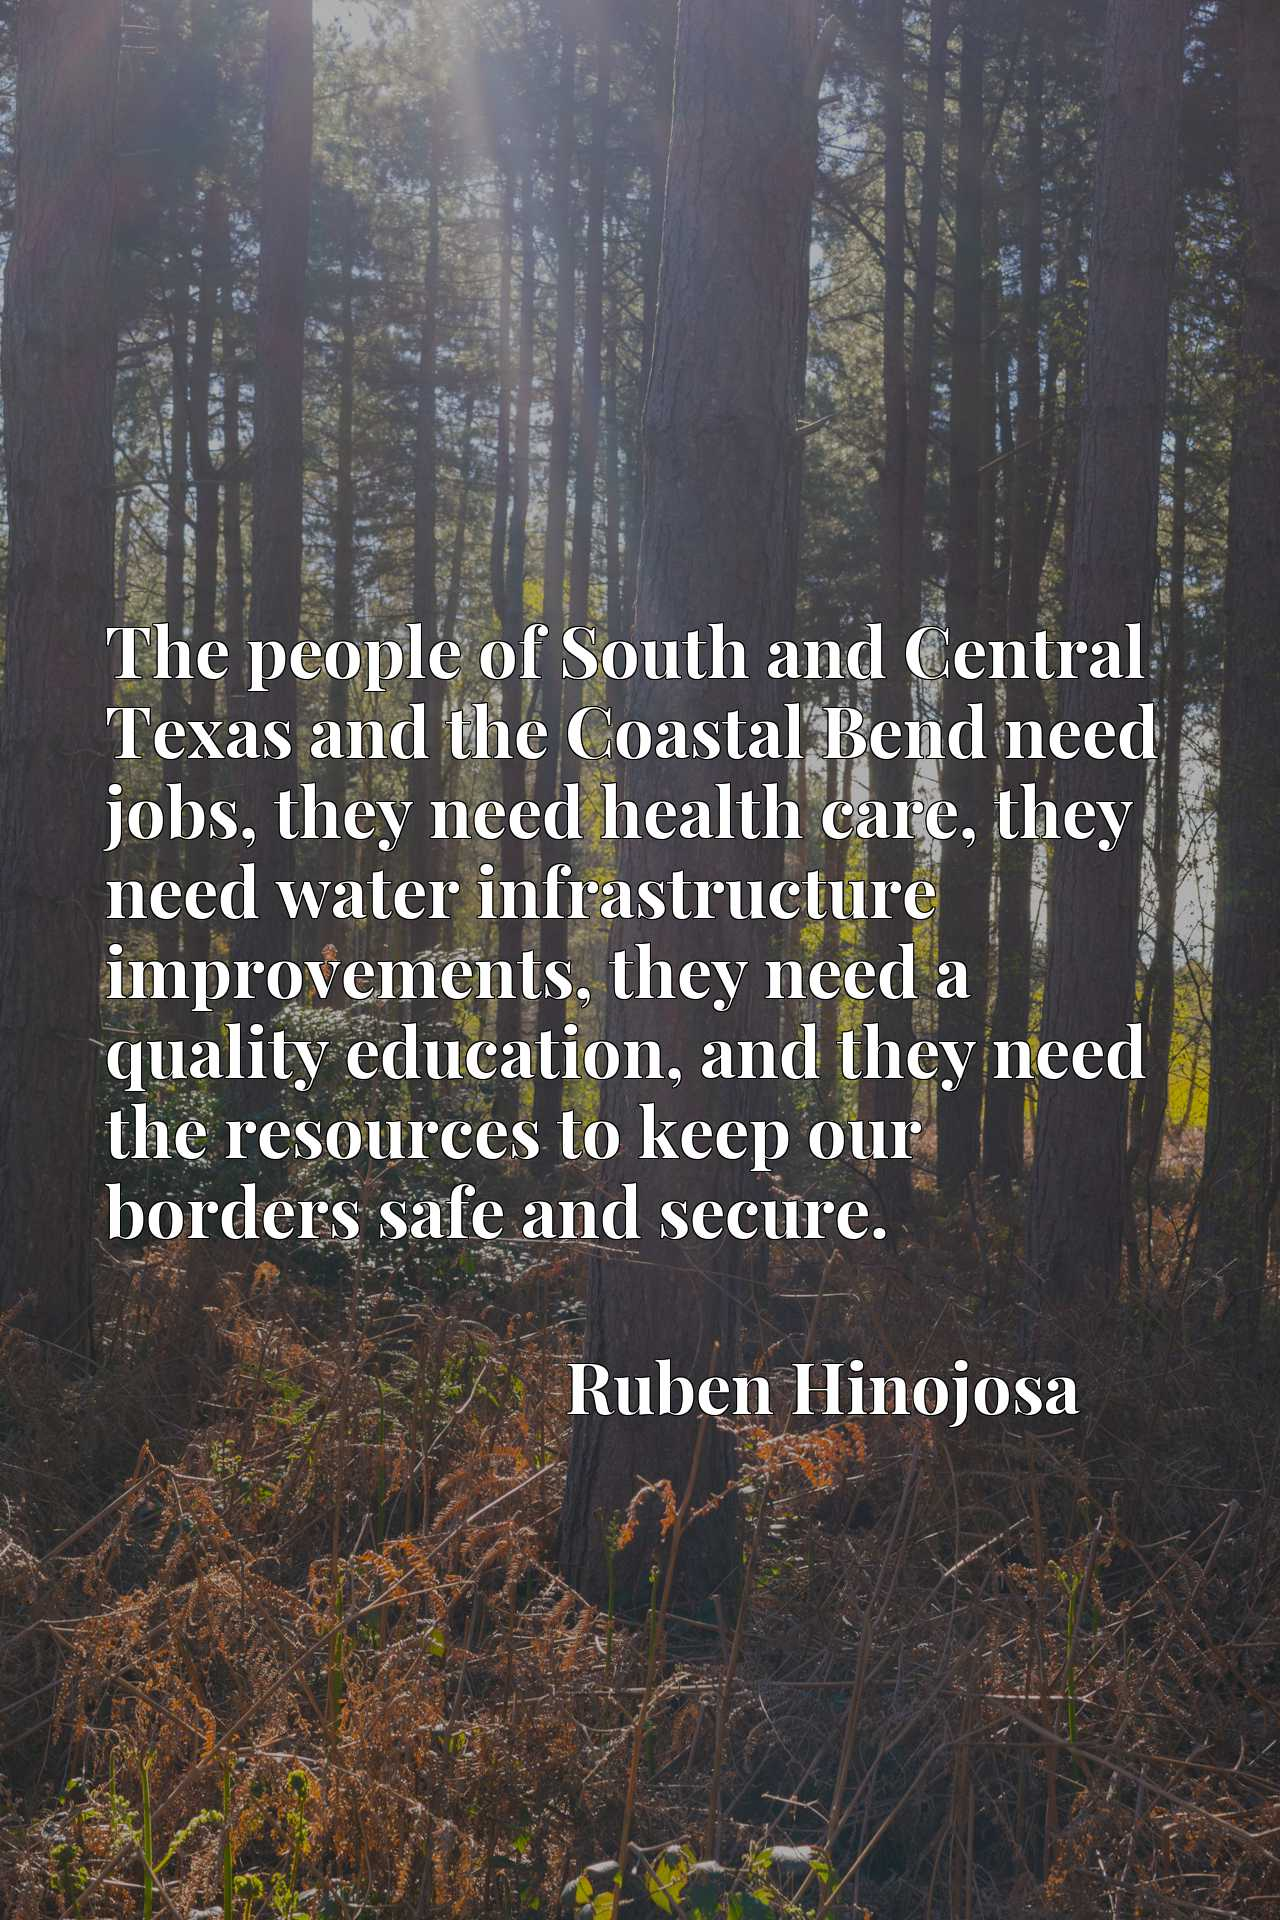 The people of South and Central Texas and the Coastal Bend need jobs, they need health care, they need water infrastructure improvements, they need a quality education, and they need the resources to keep our borders safe and secure.